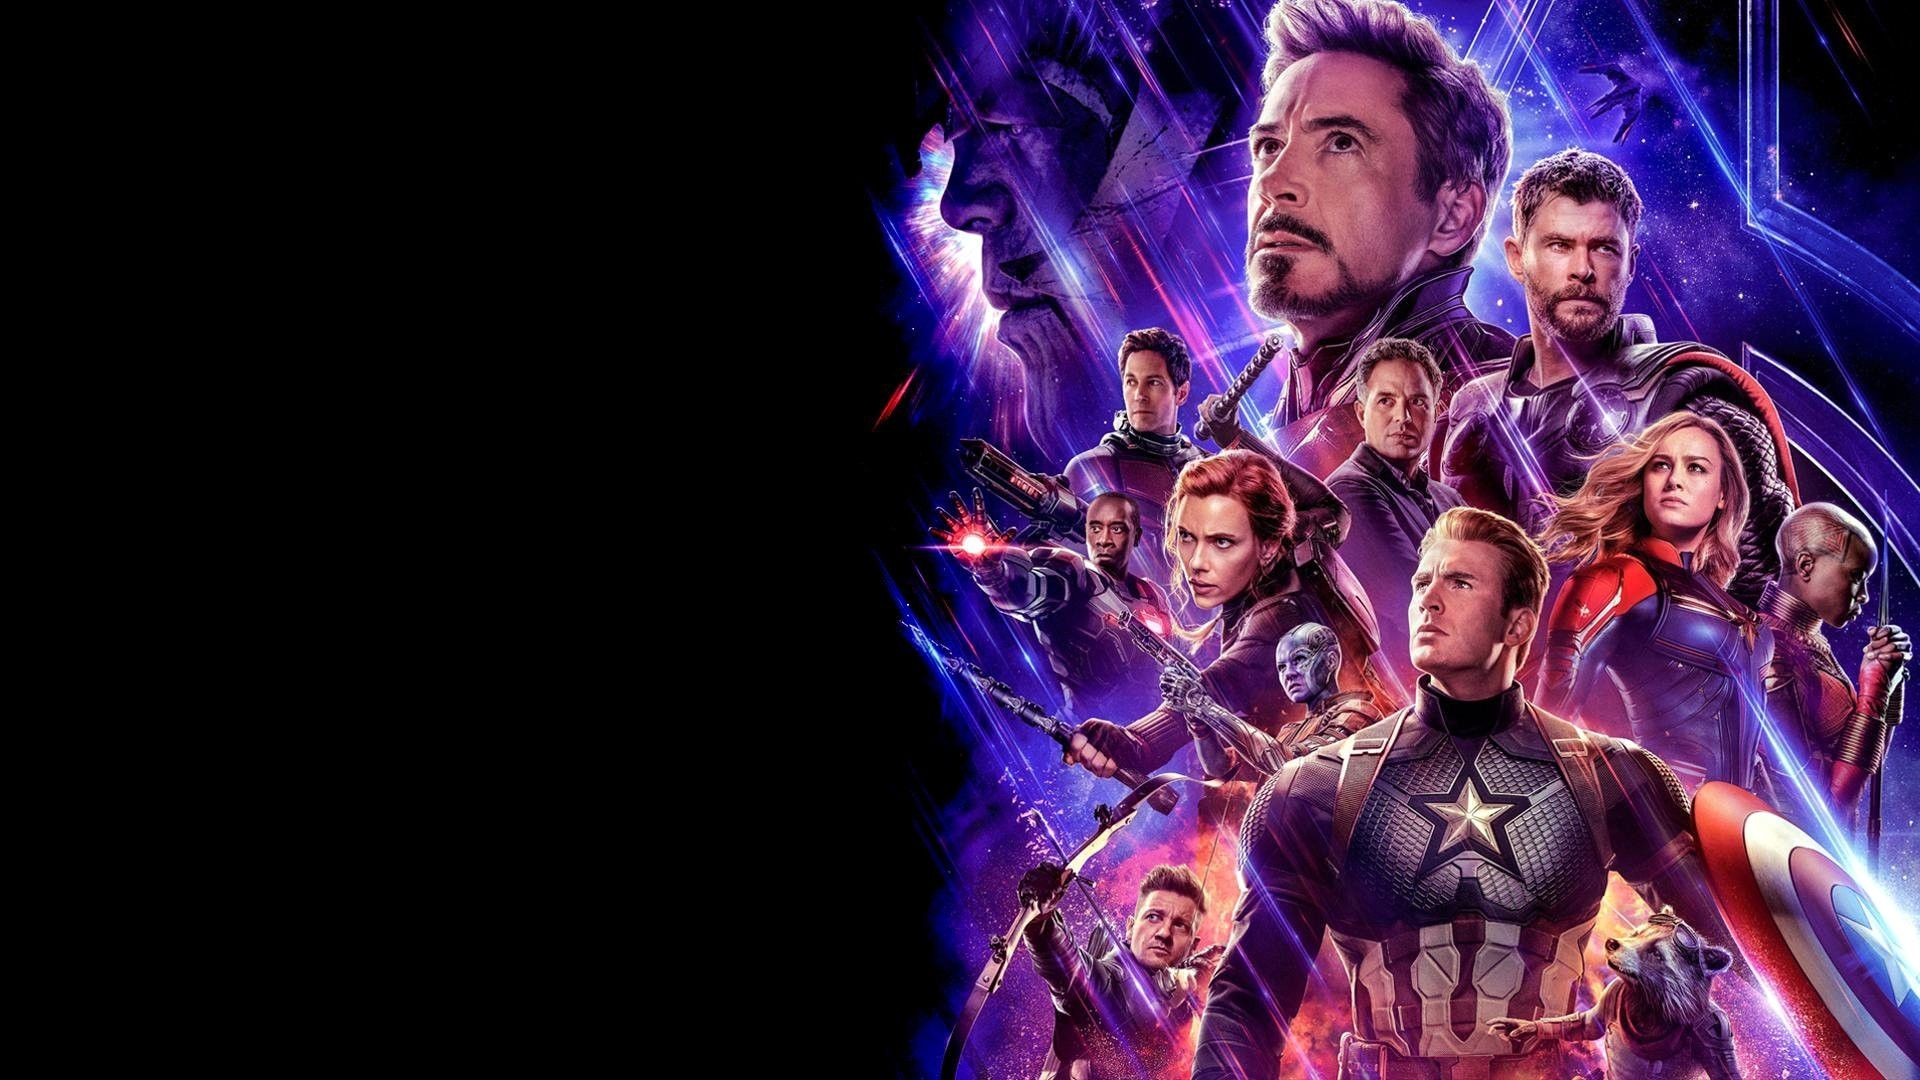 Unique Avengers Endgame Wallpaper Hd Download Avengers Wallpaper